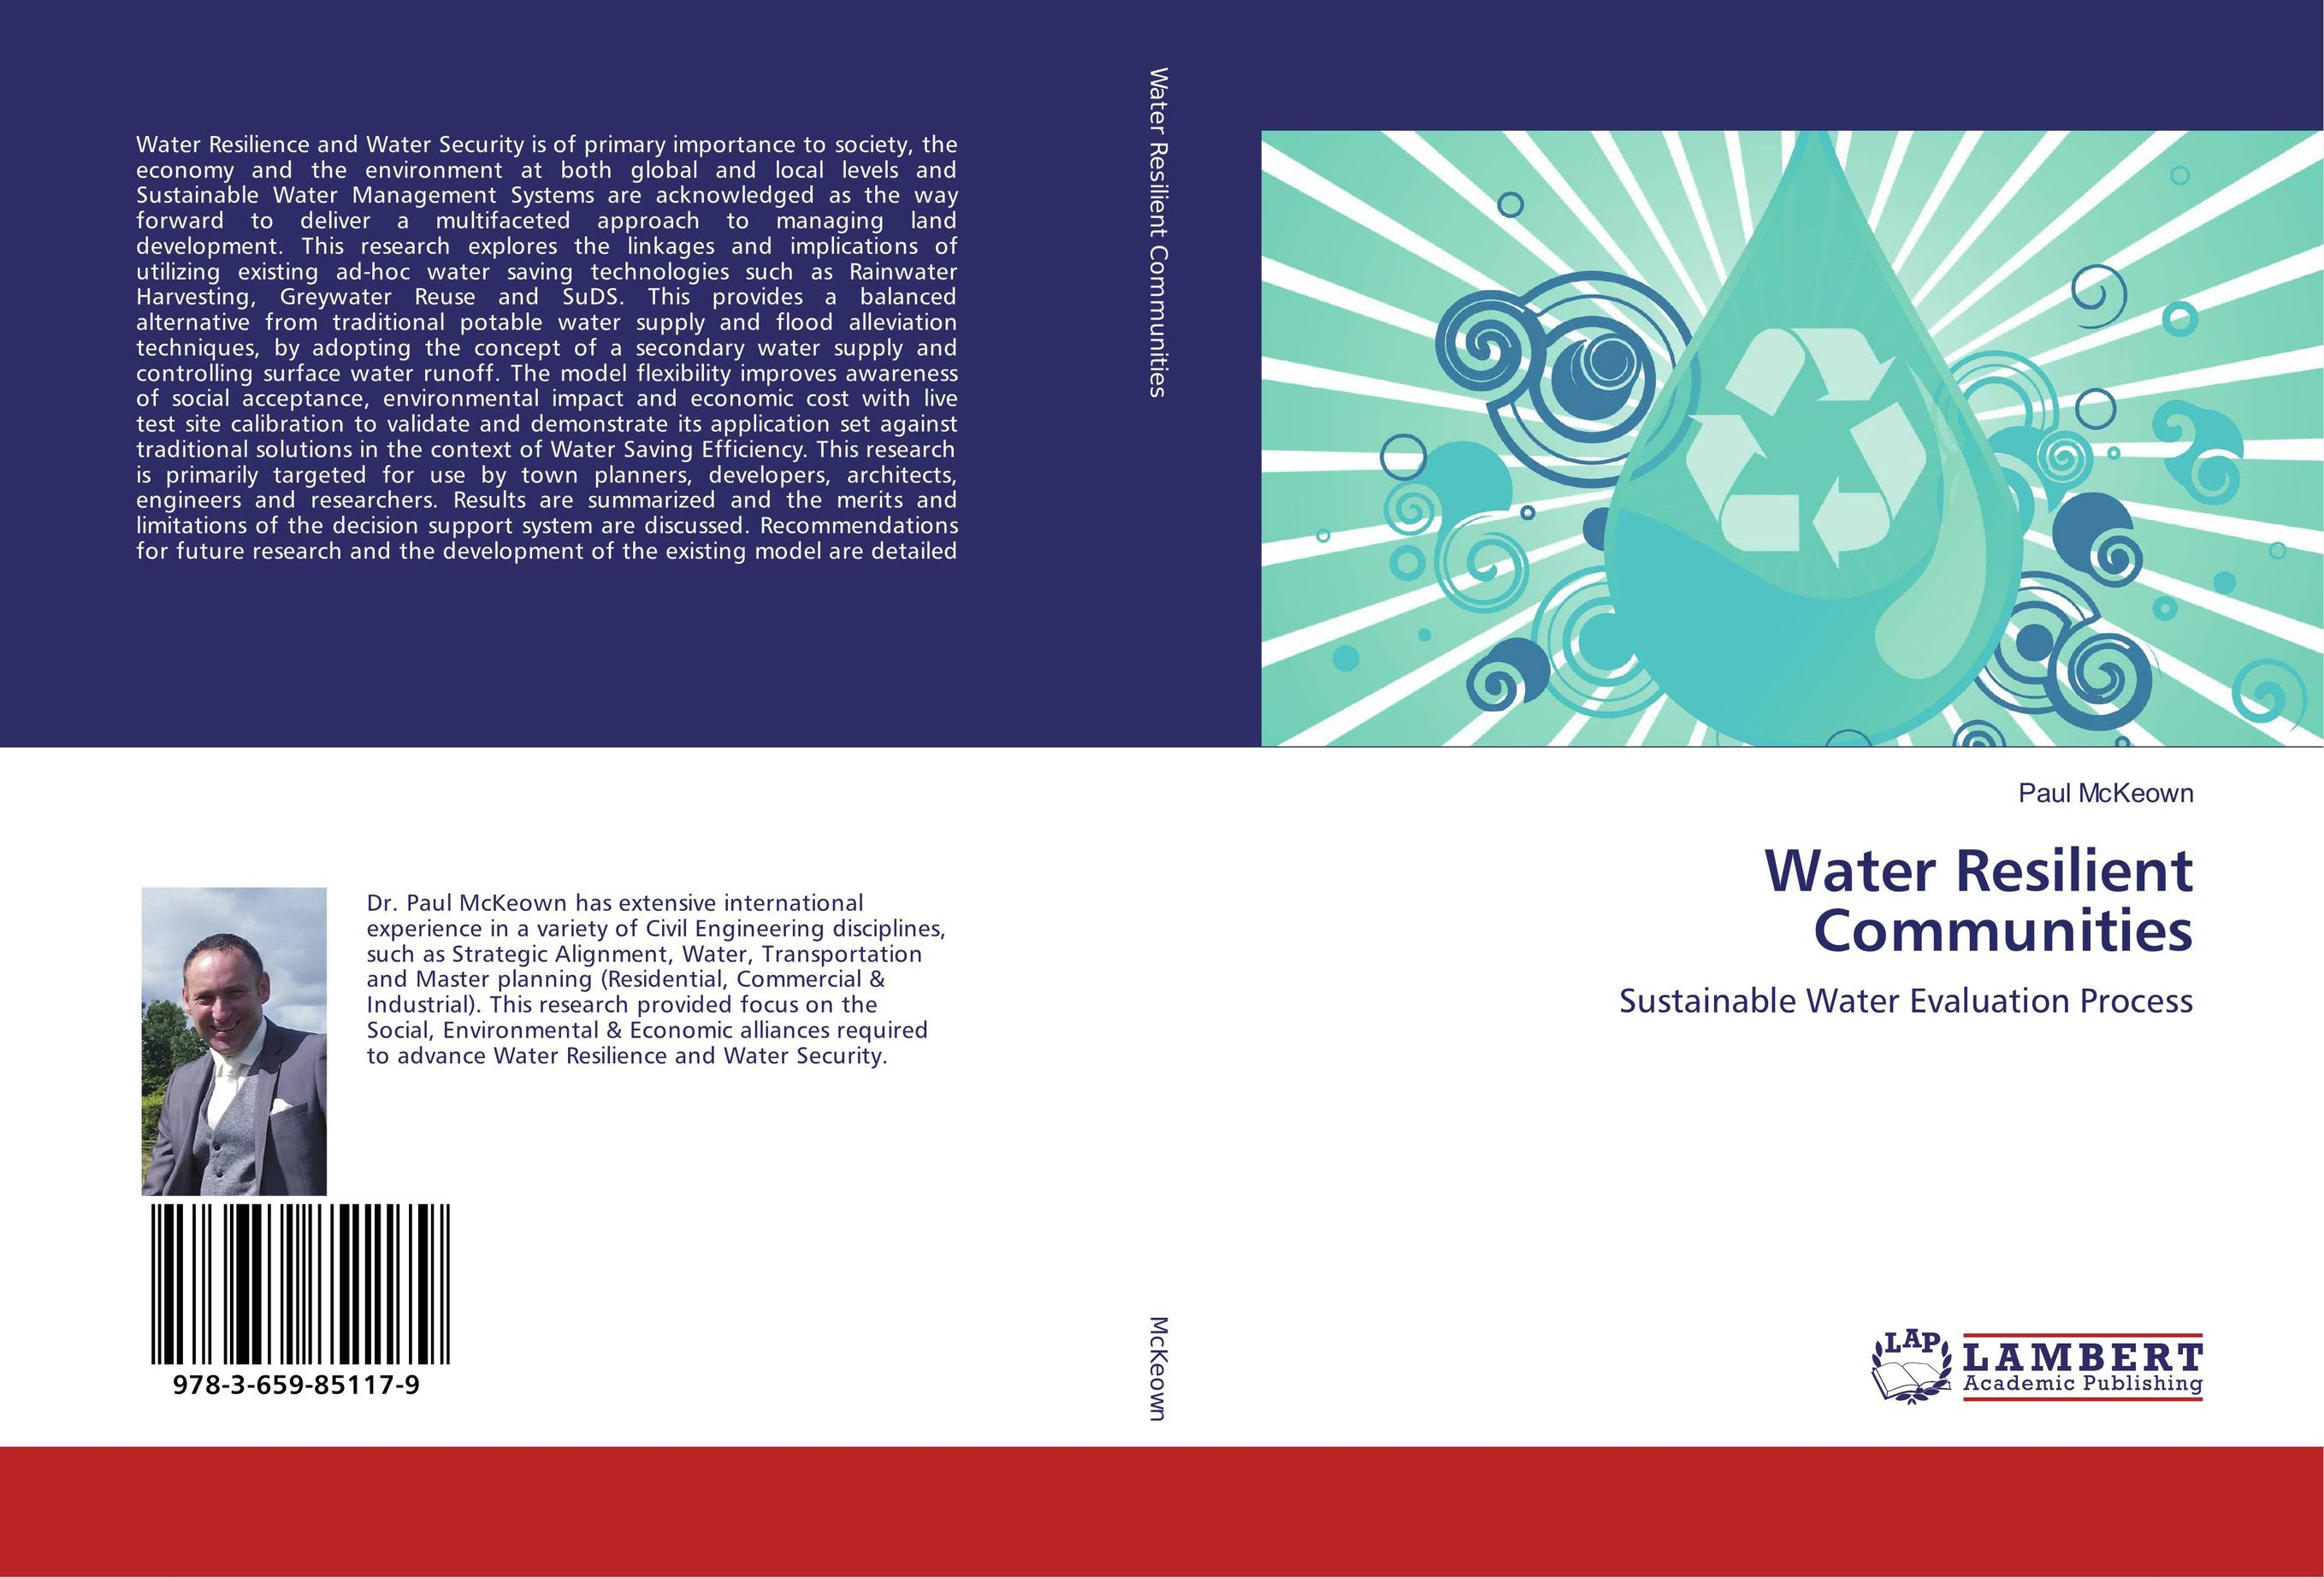 Water Resilient Communities bride of the water god v 3